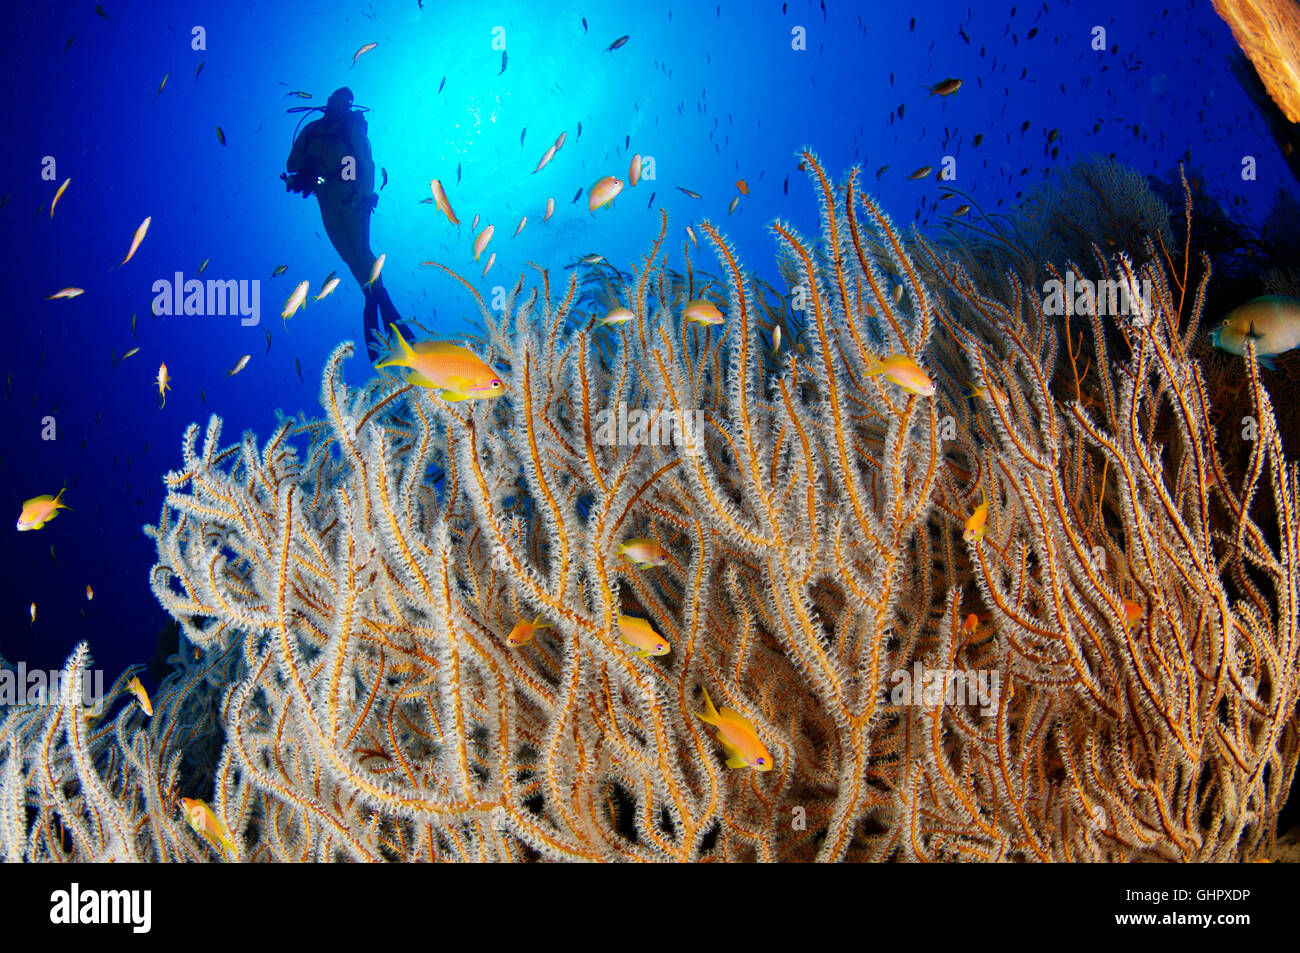 Subergorgia sp., Coral reef and Gorgonian and scuba diver, Hurghada, Giftun Island Reef, Red Sea, Egypt, Africa Stock Photo